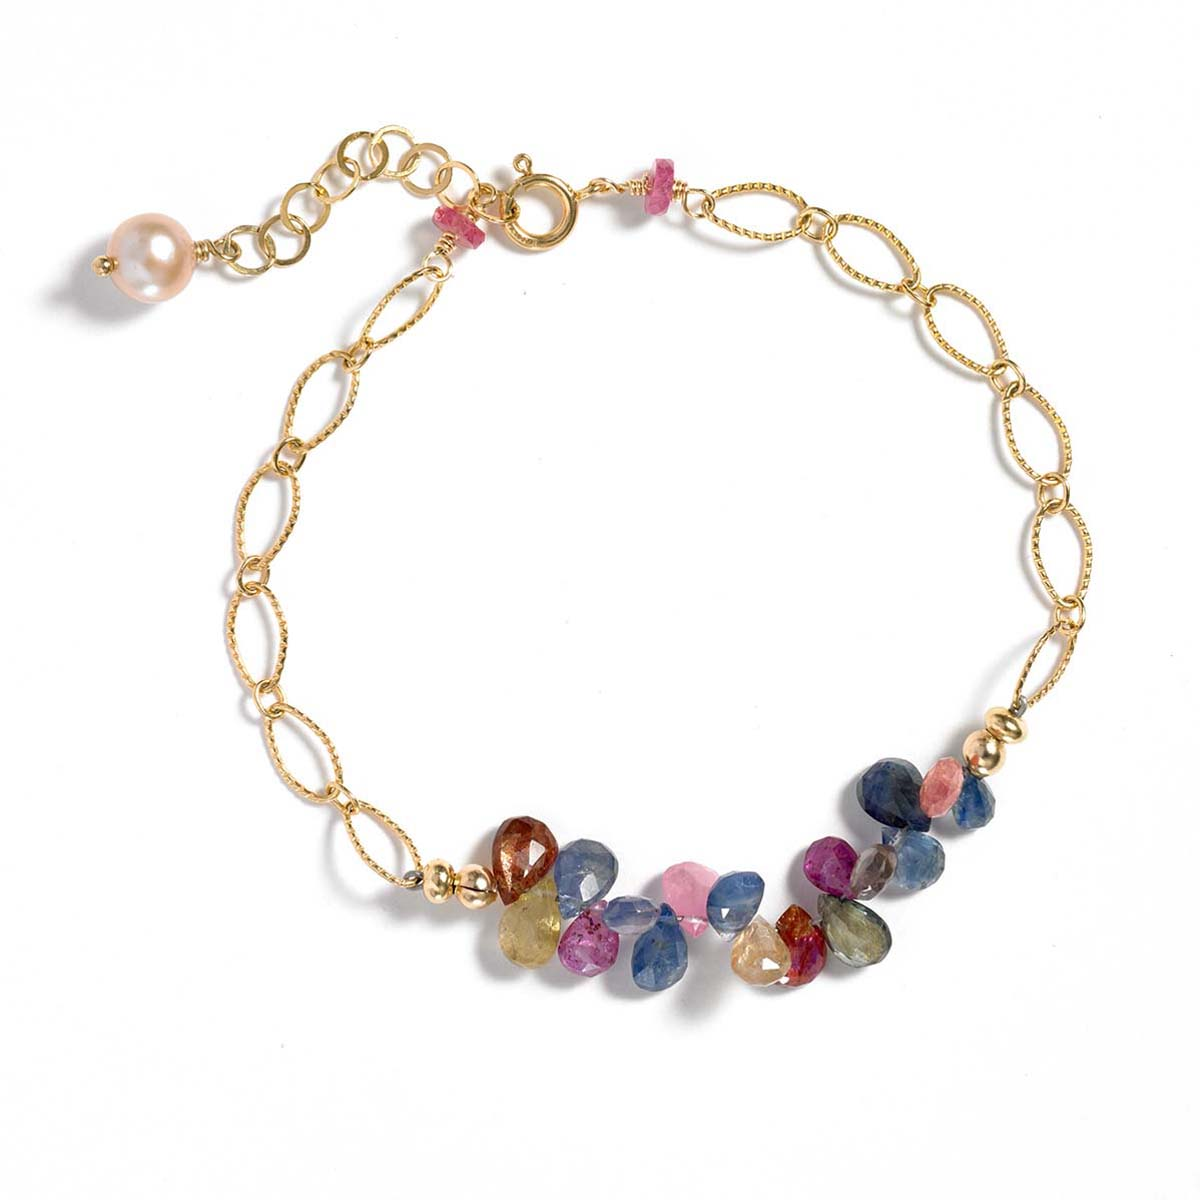 Barbara Wilkinson Jewelry   Made in New York jewelry with gemstones and precious metals